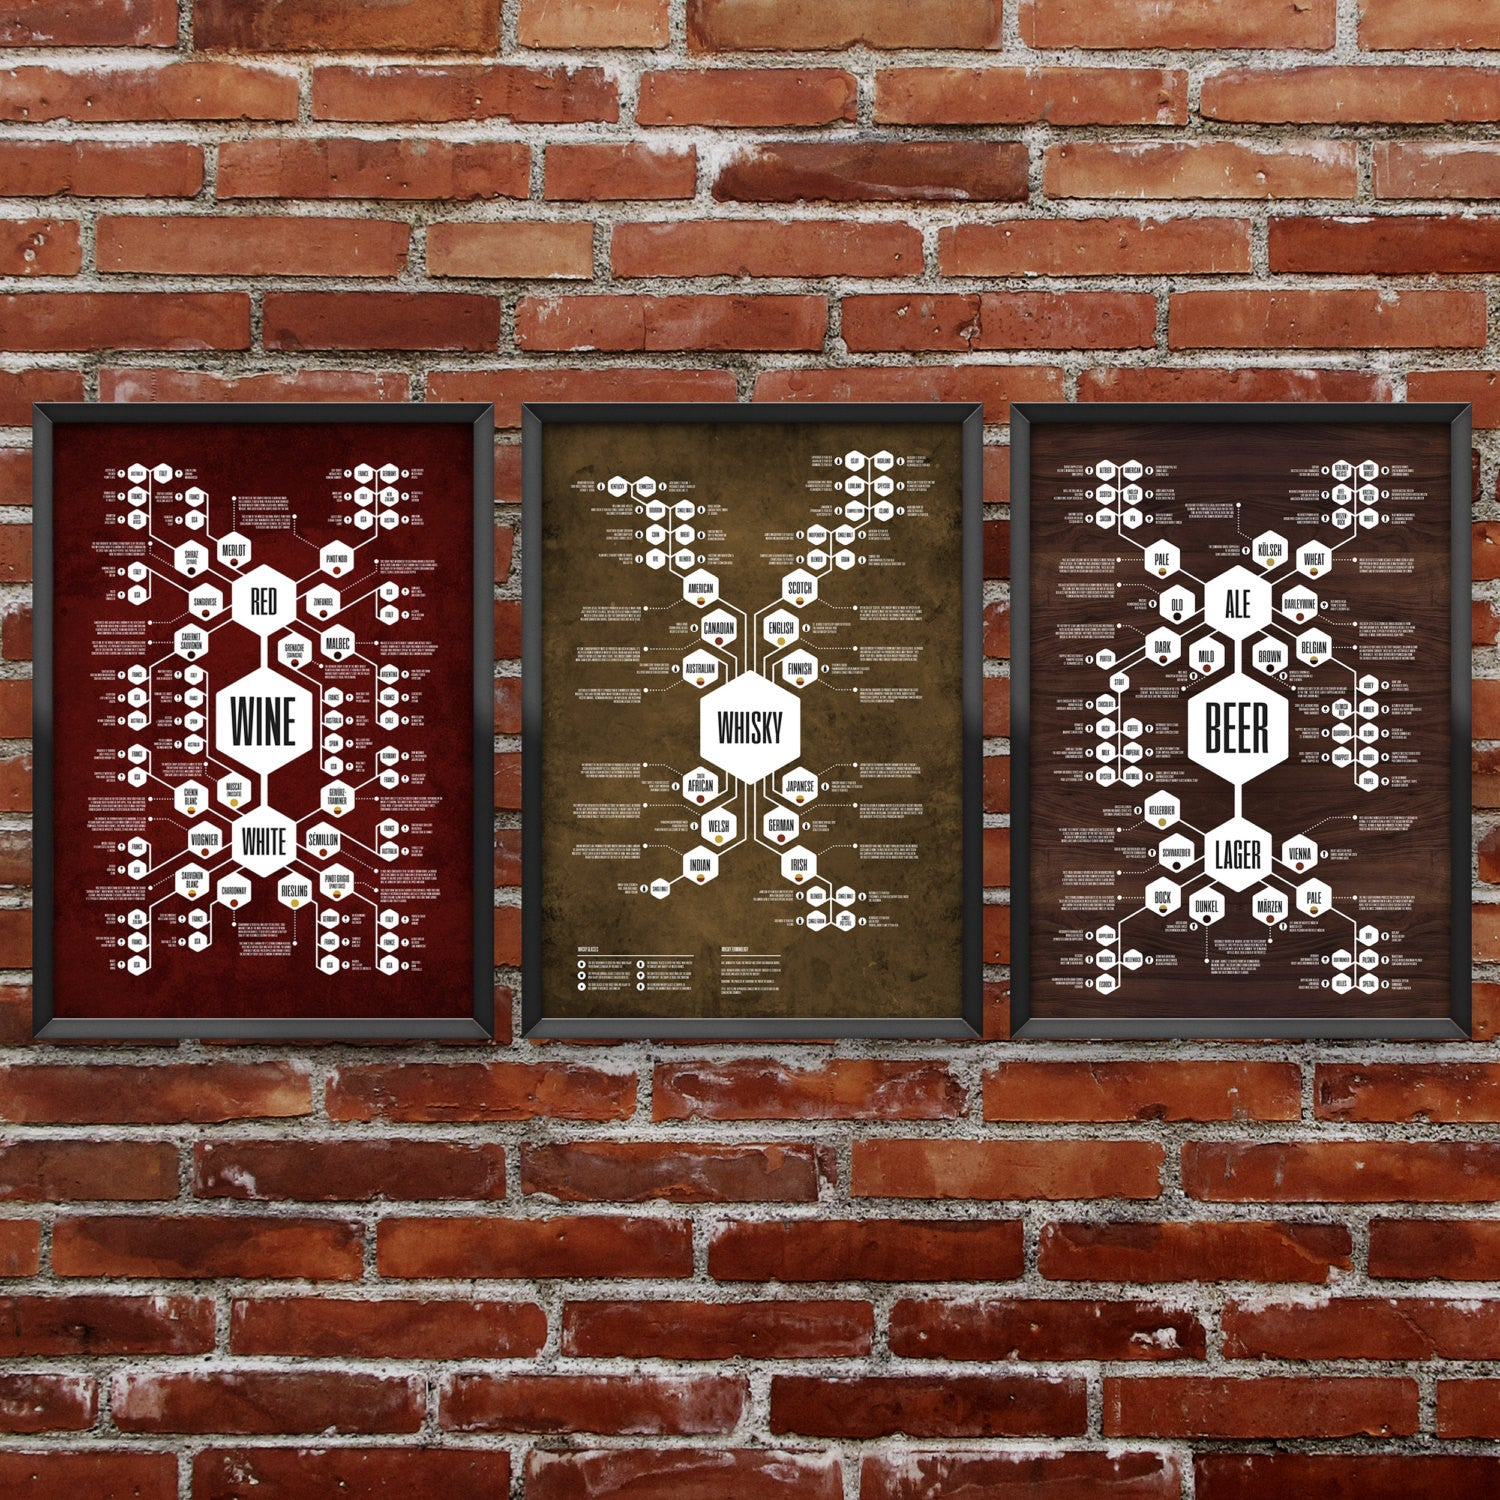 Complete Set of 3 - Beer Diagram + Whiskey Diagram + Wine Diagram Prints